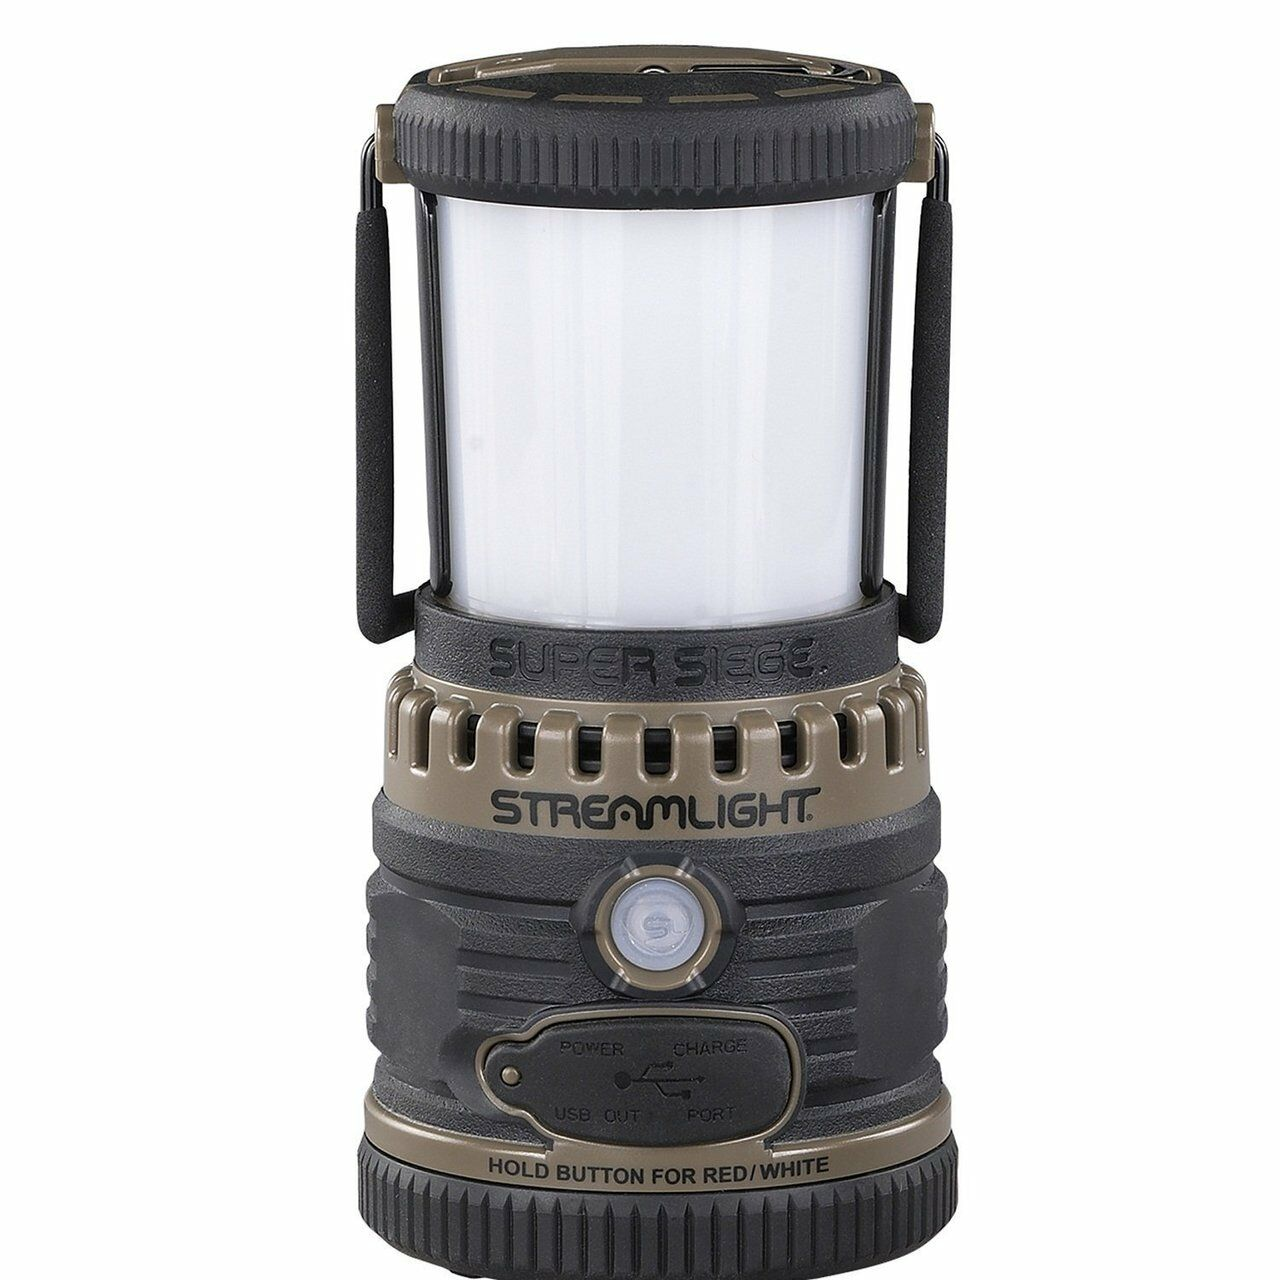 Streamlight 44947 Super Siege 120V 120V 120V AC High PoweROT Lantern - Coyote 5dba5c